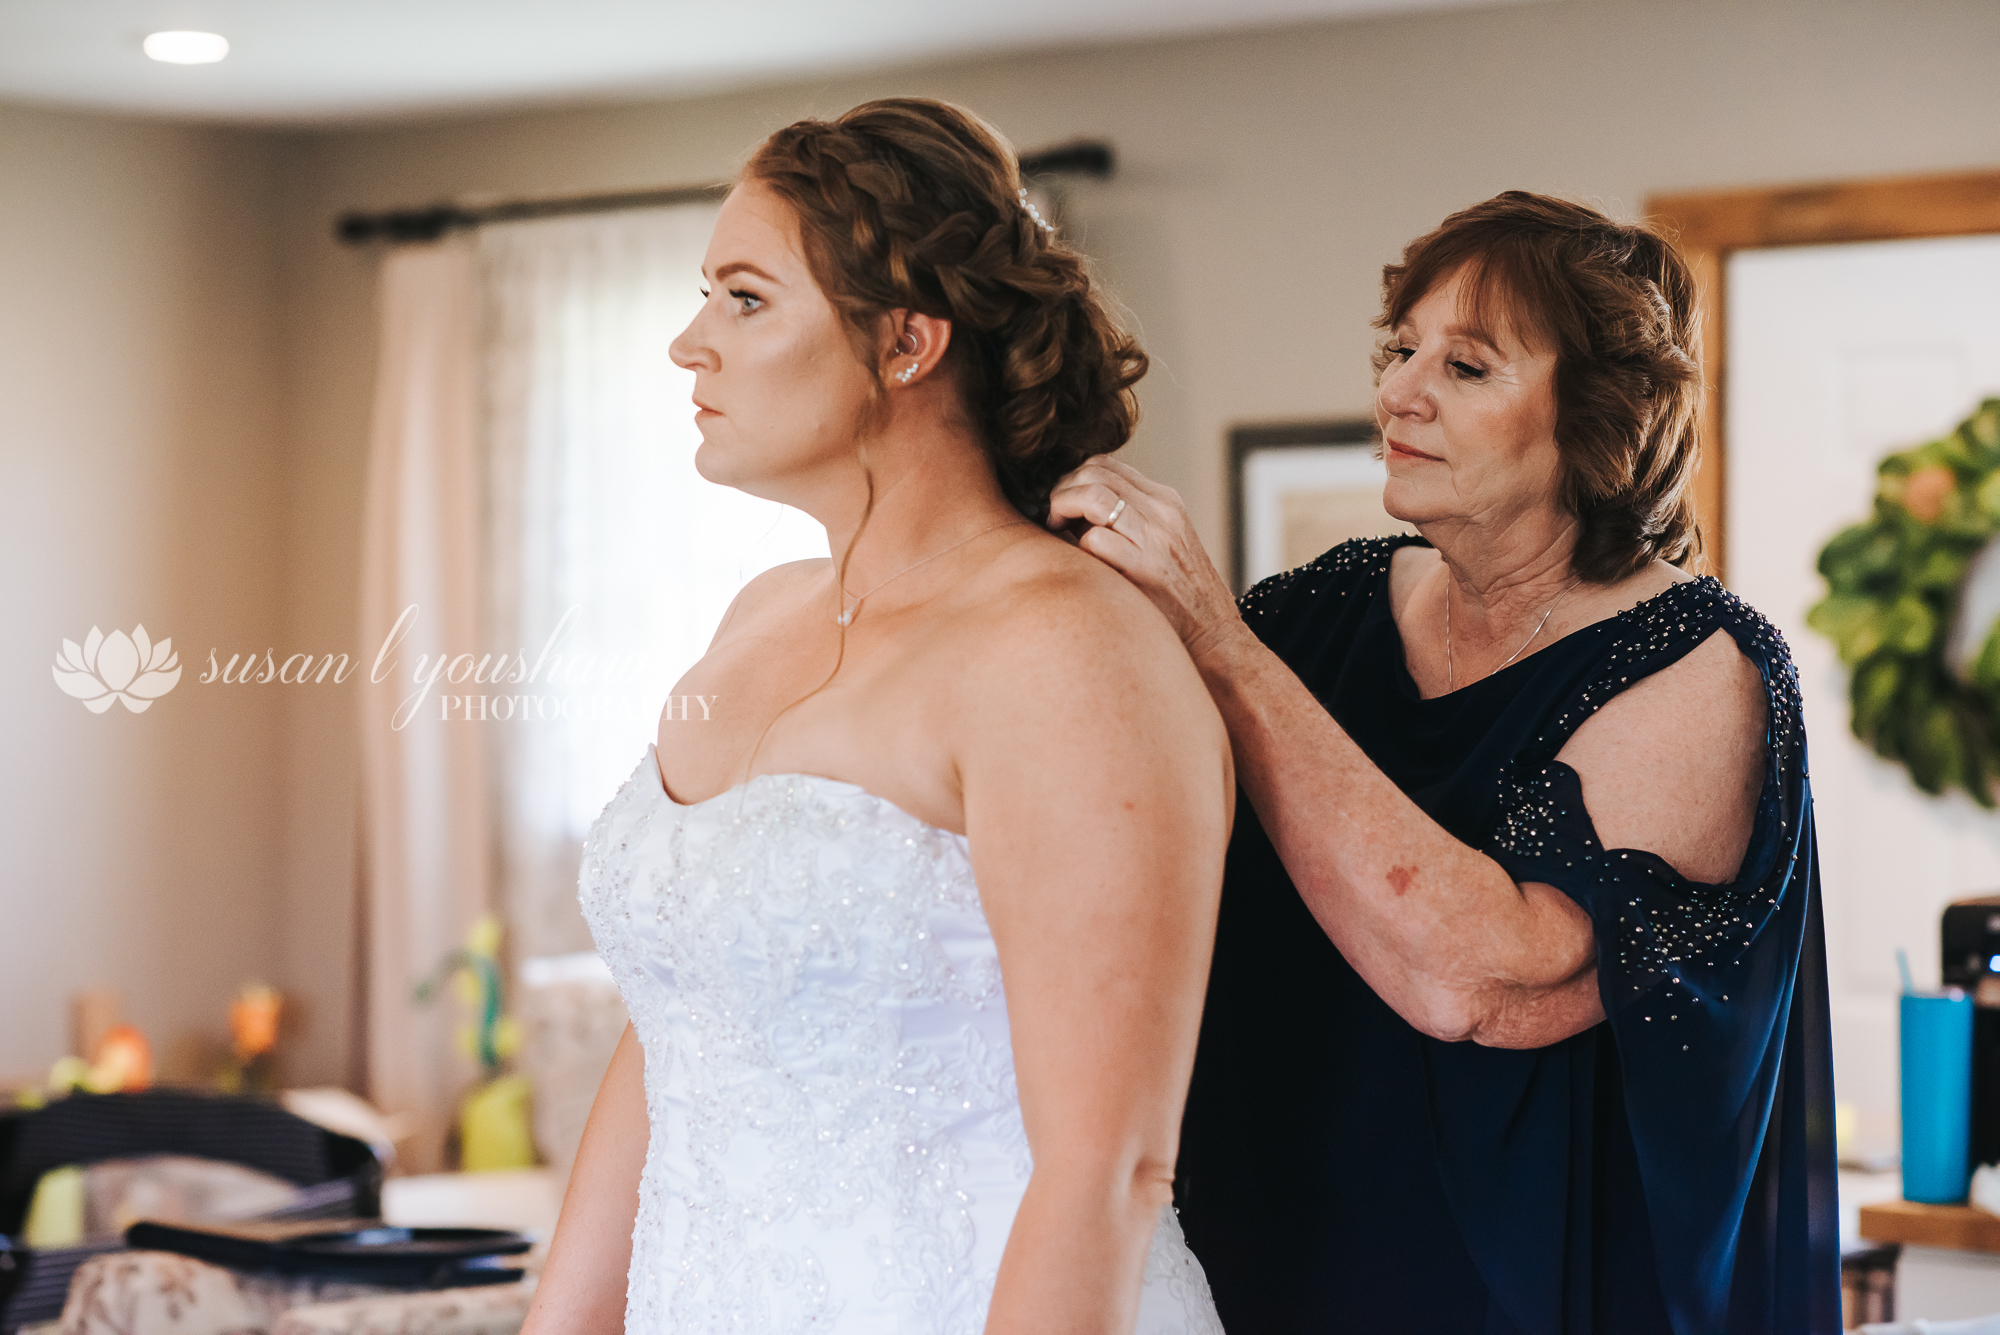 Erin and Jason Wedding Photos 07-06-2019 SLY Photography-48.jpg